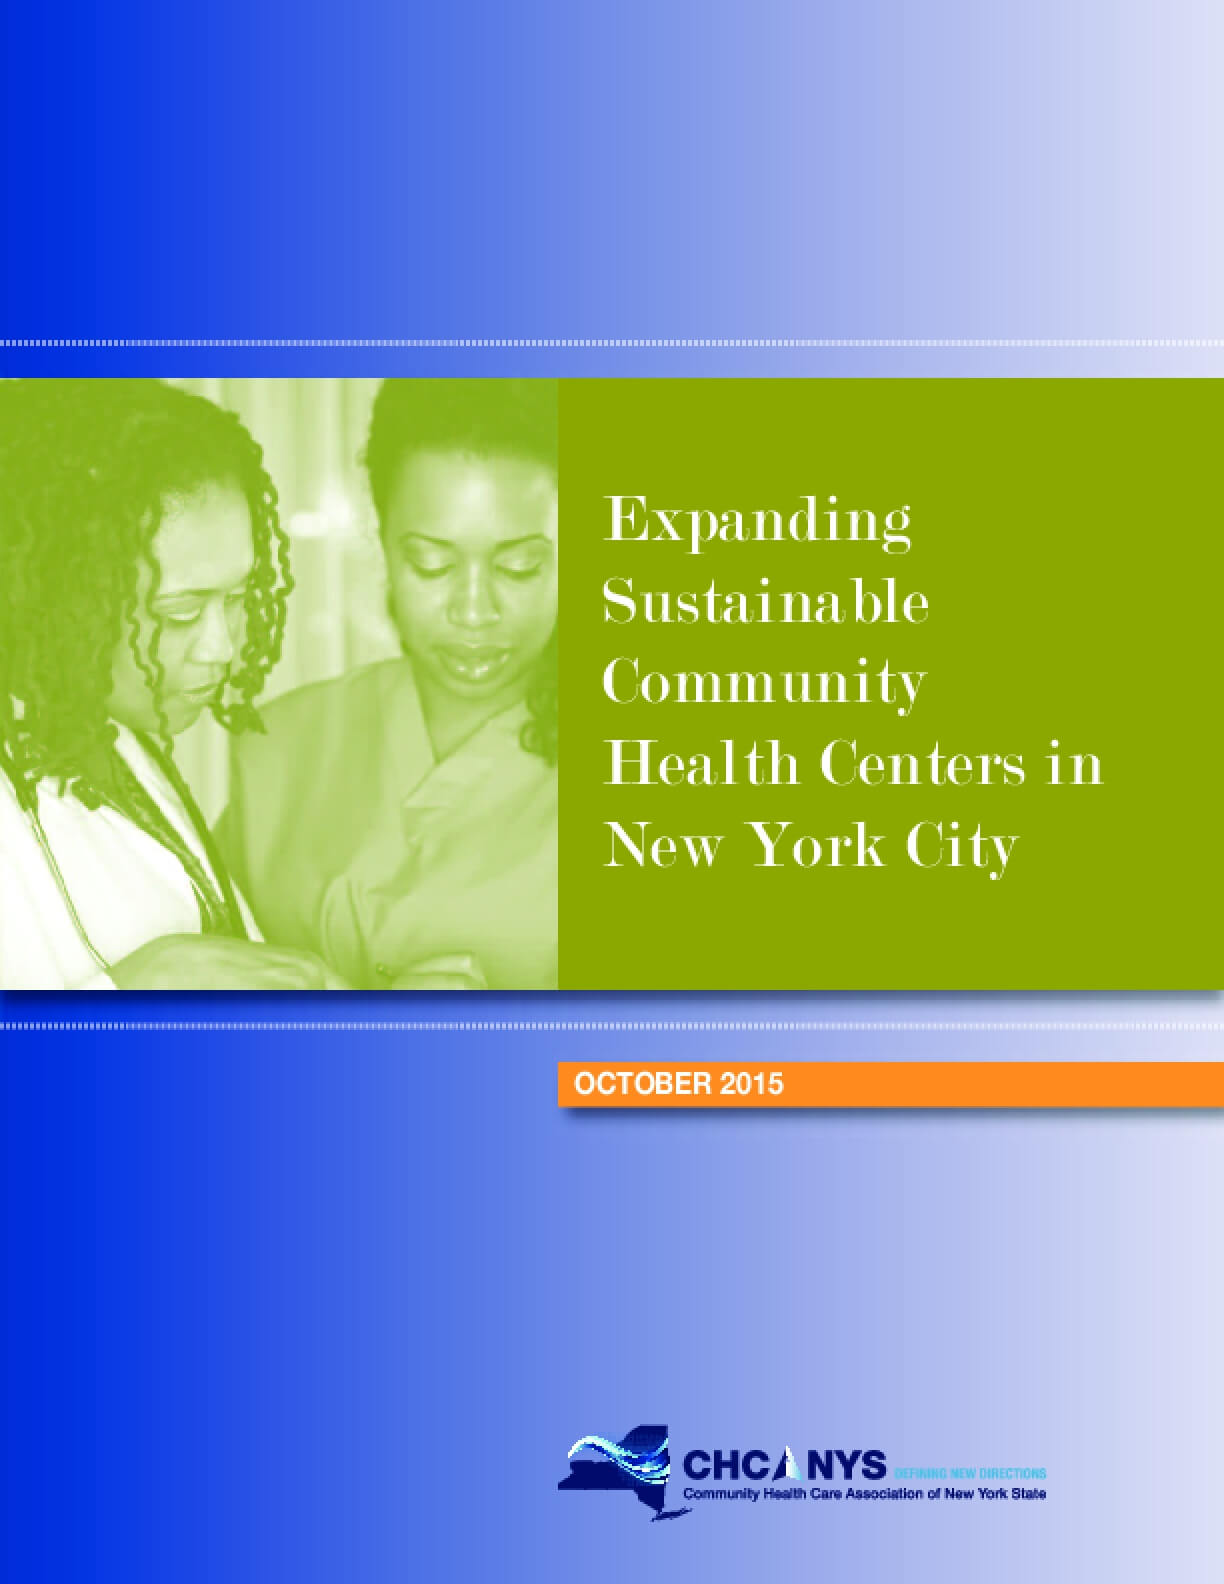 Expanding Sustainable Community Health Centers in New York City